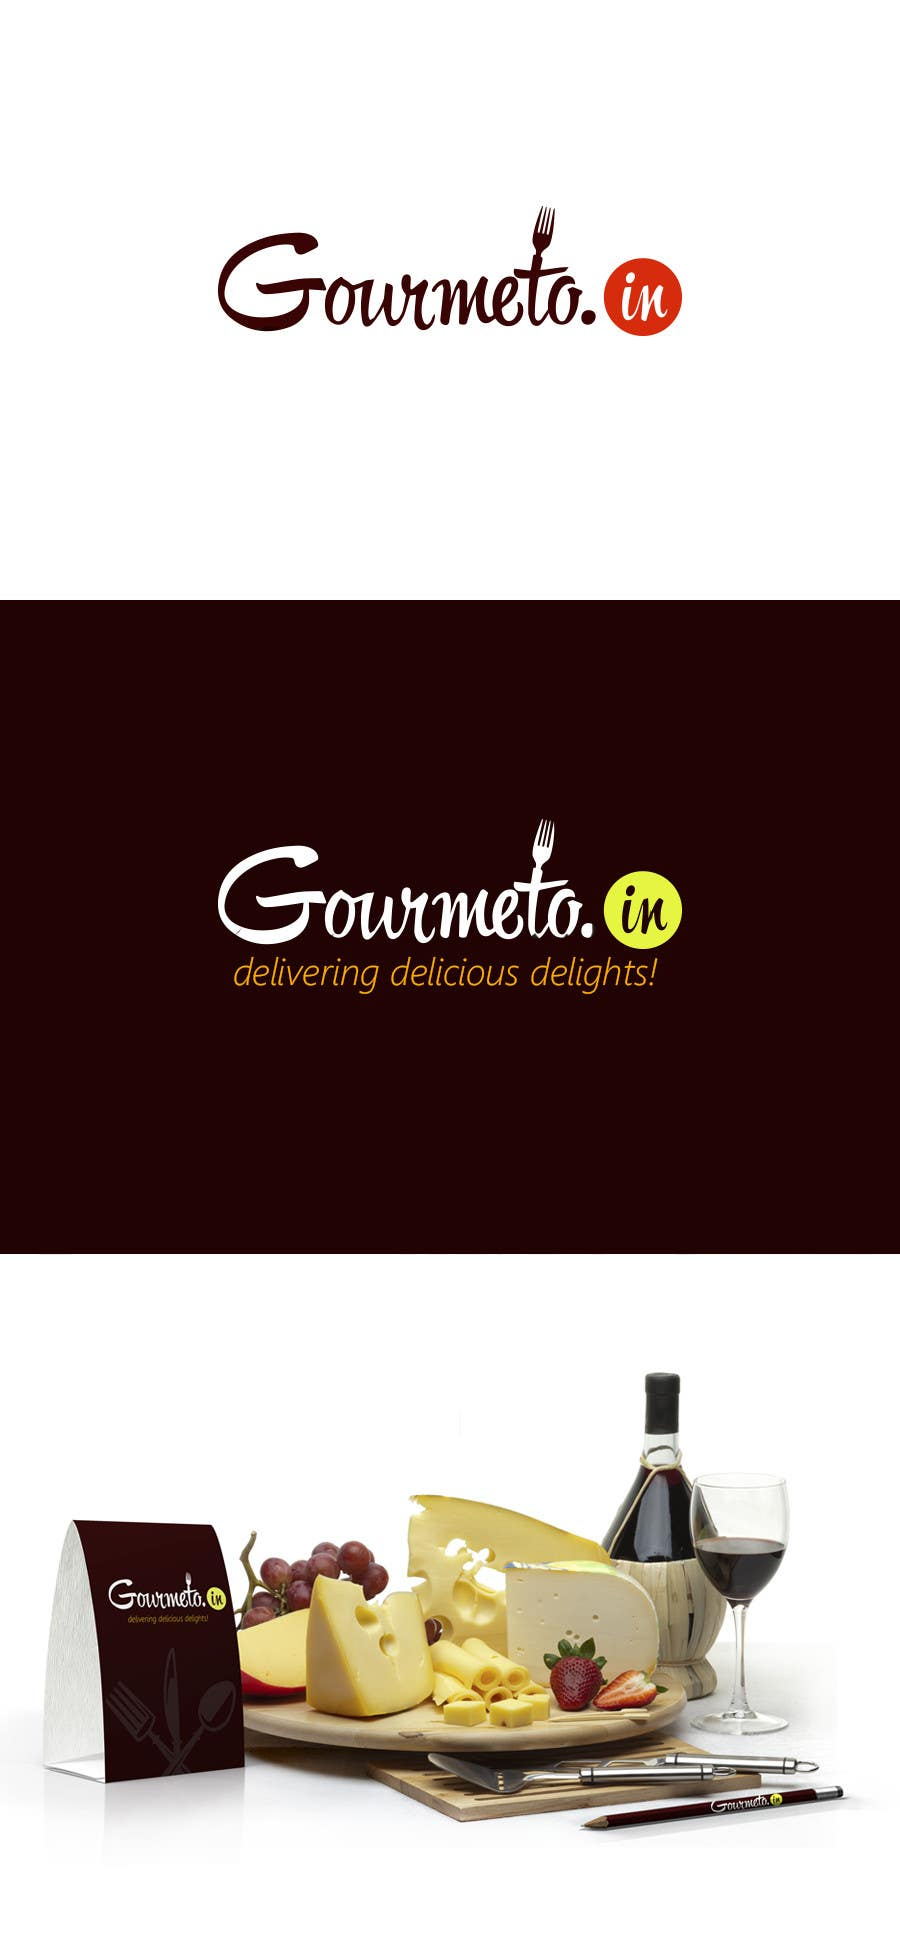 #25 for Design a Logo for my website: Gourmeto.in by olivermxjp